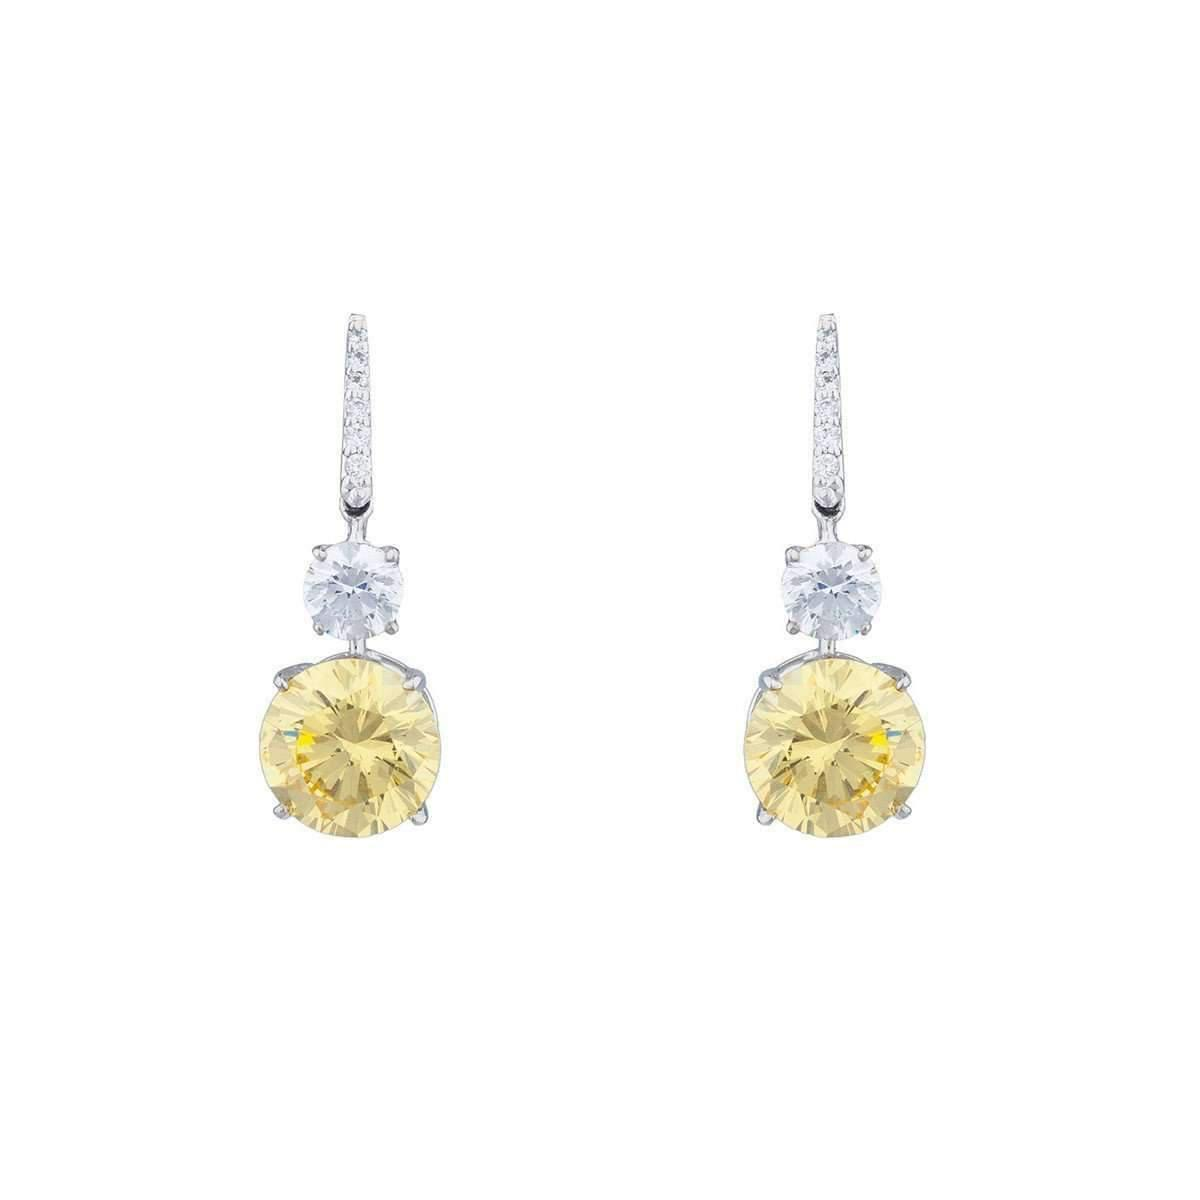 Fantasia Sterling Silver & Palladium Double Round Pave Drop Earrings cwAAp